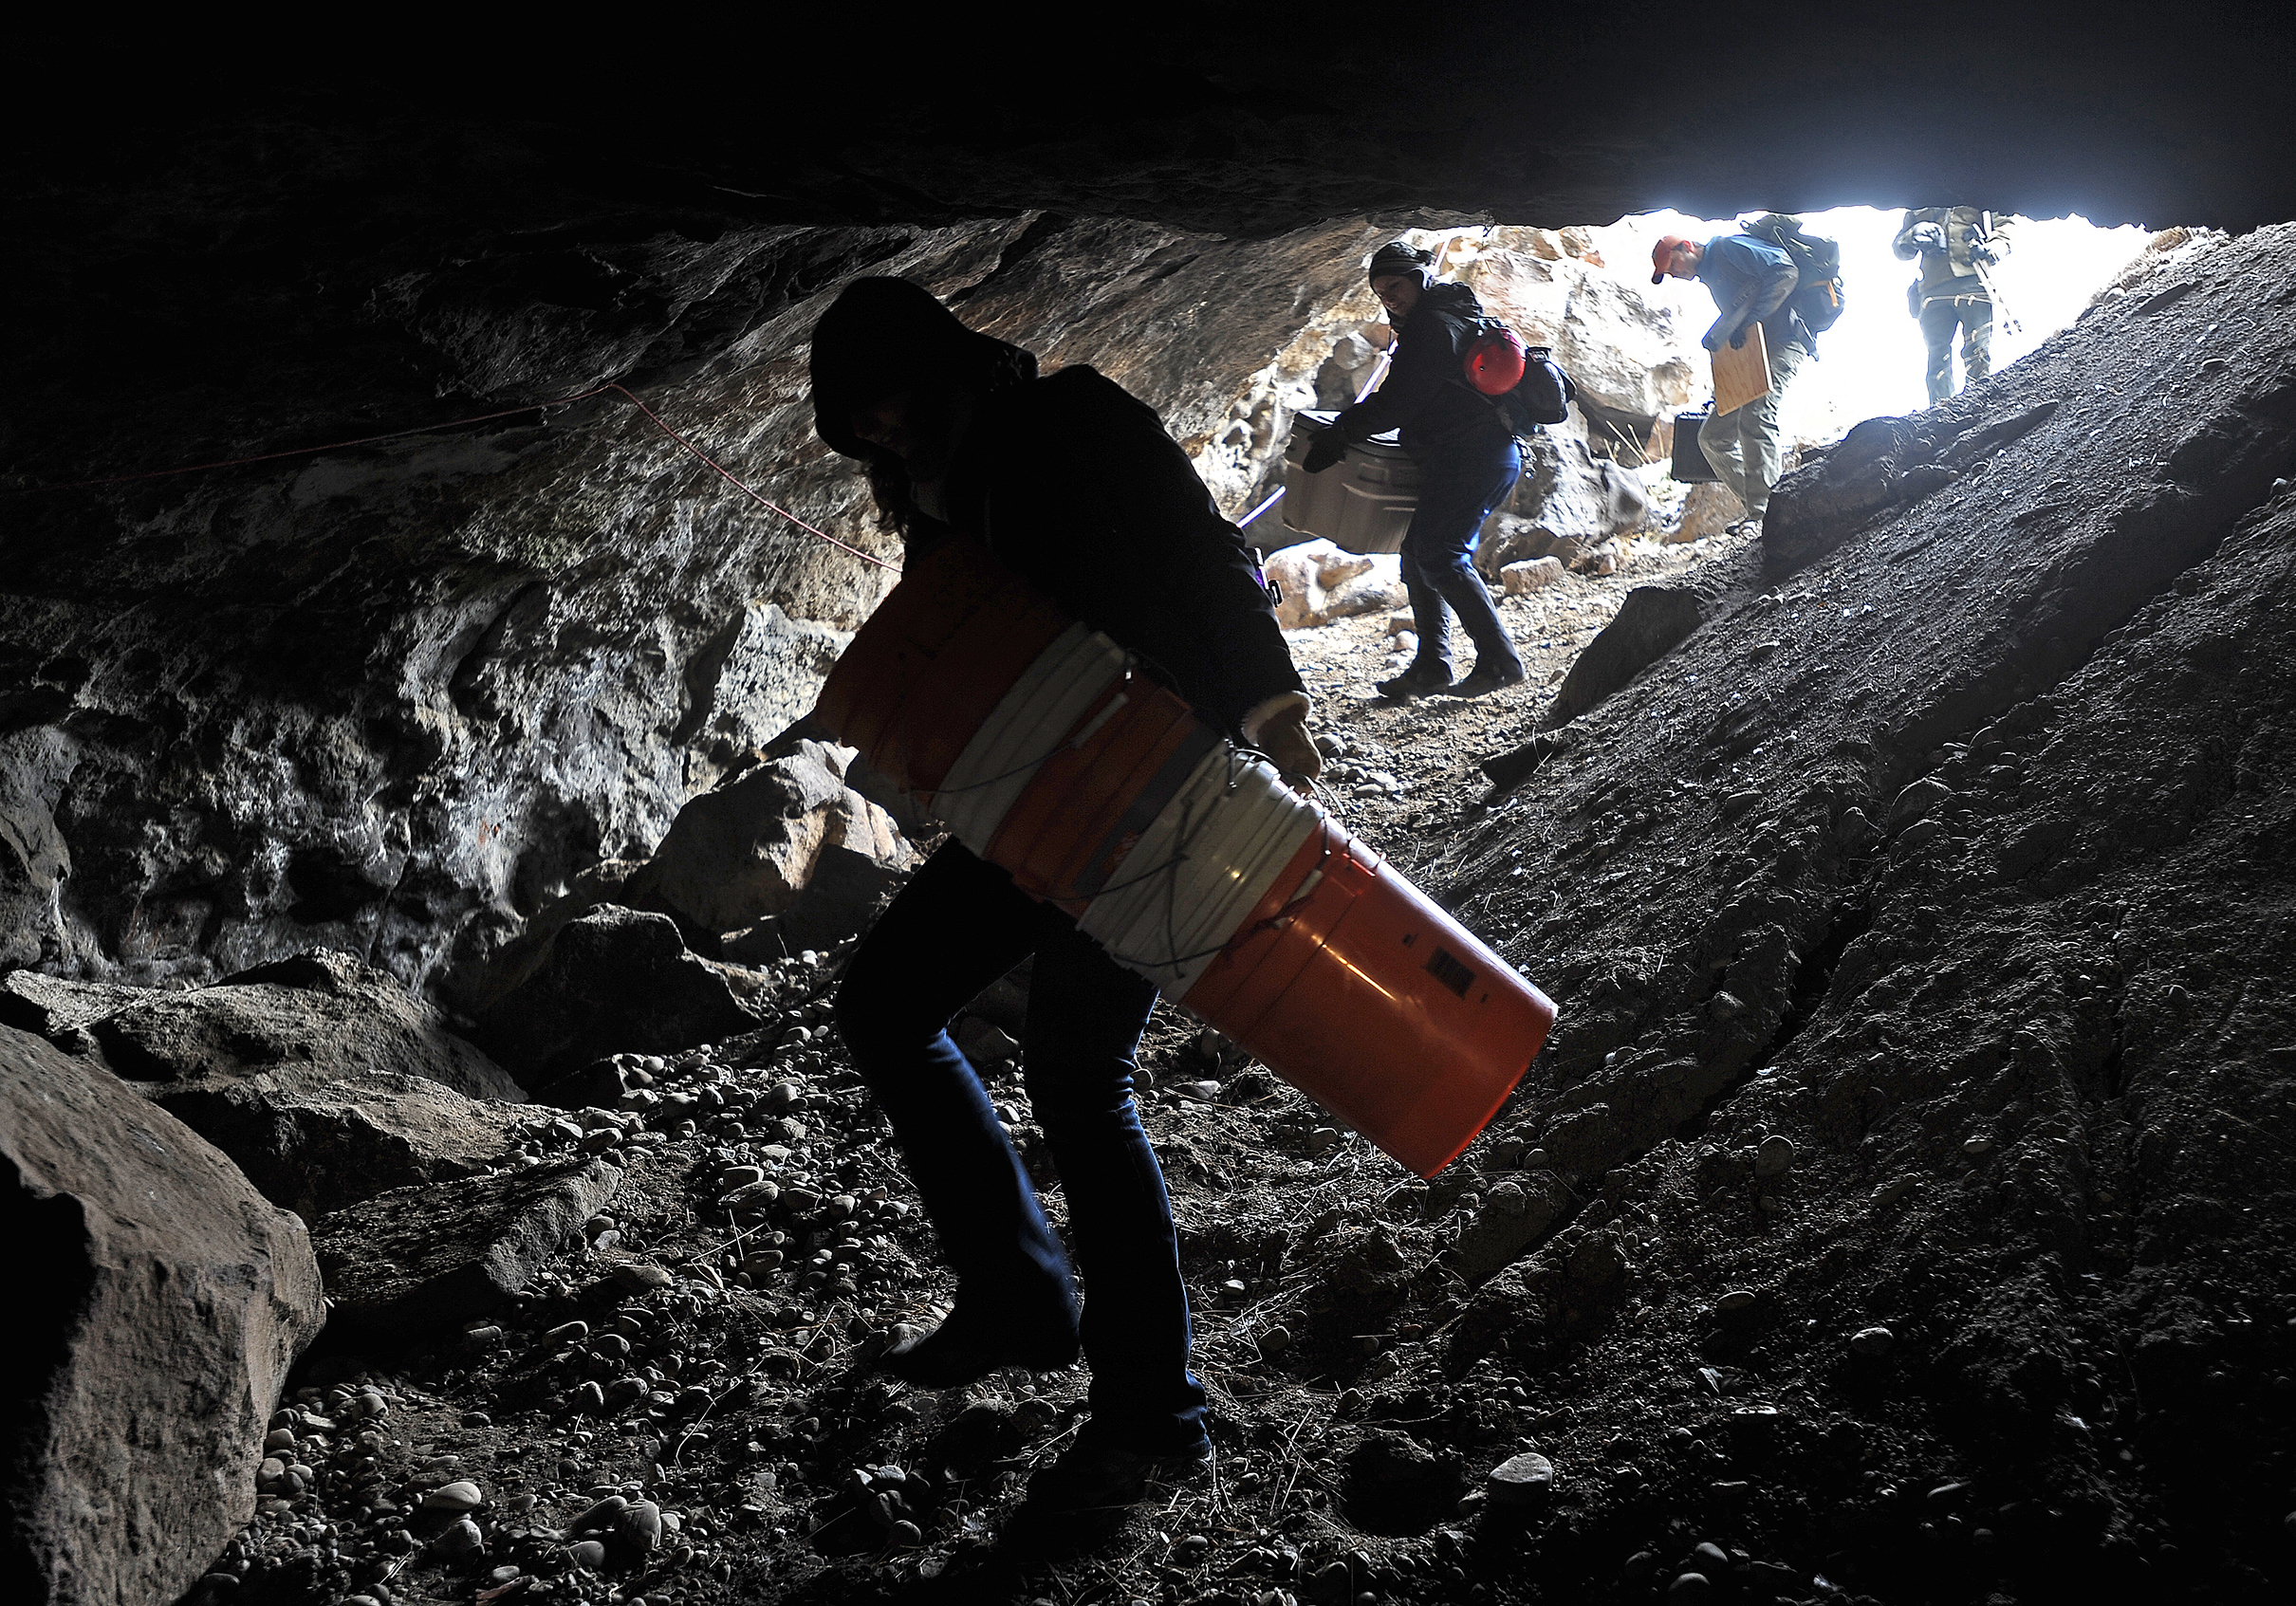 Undergraduate and graduate students carry in an array of supplies they will use to search and excavate designated parts of the cave Feb. 27 in Dubois.